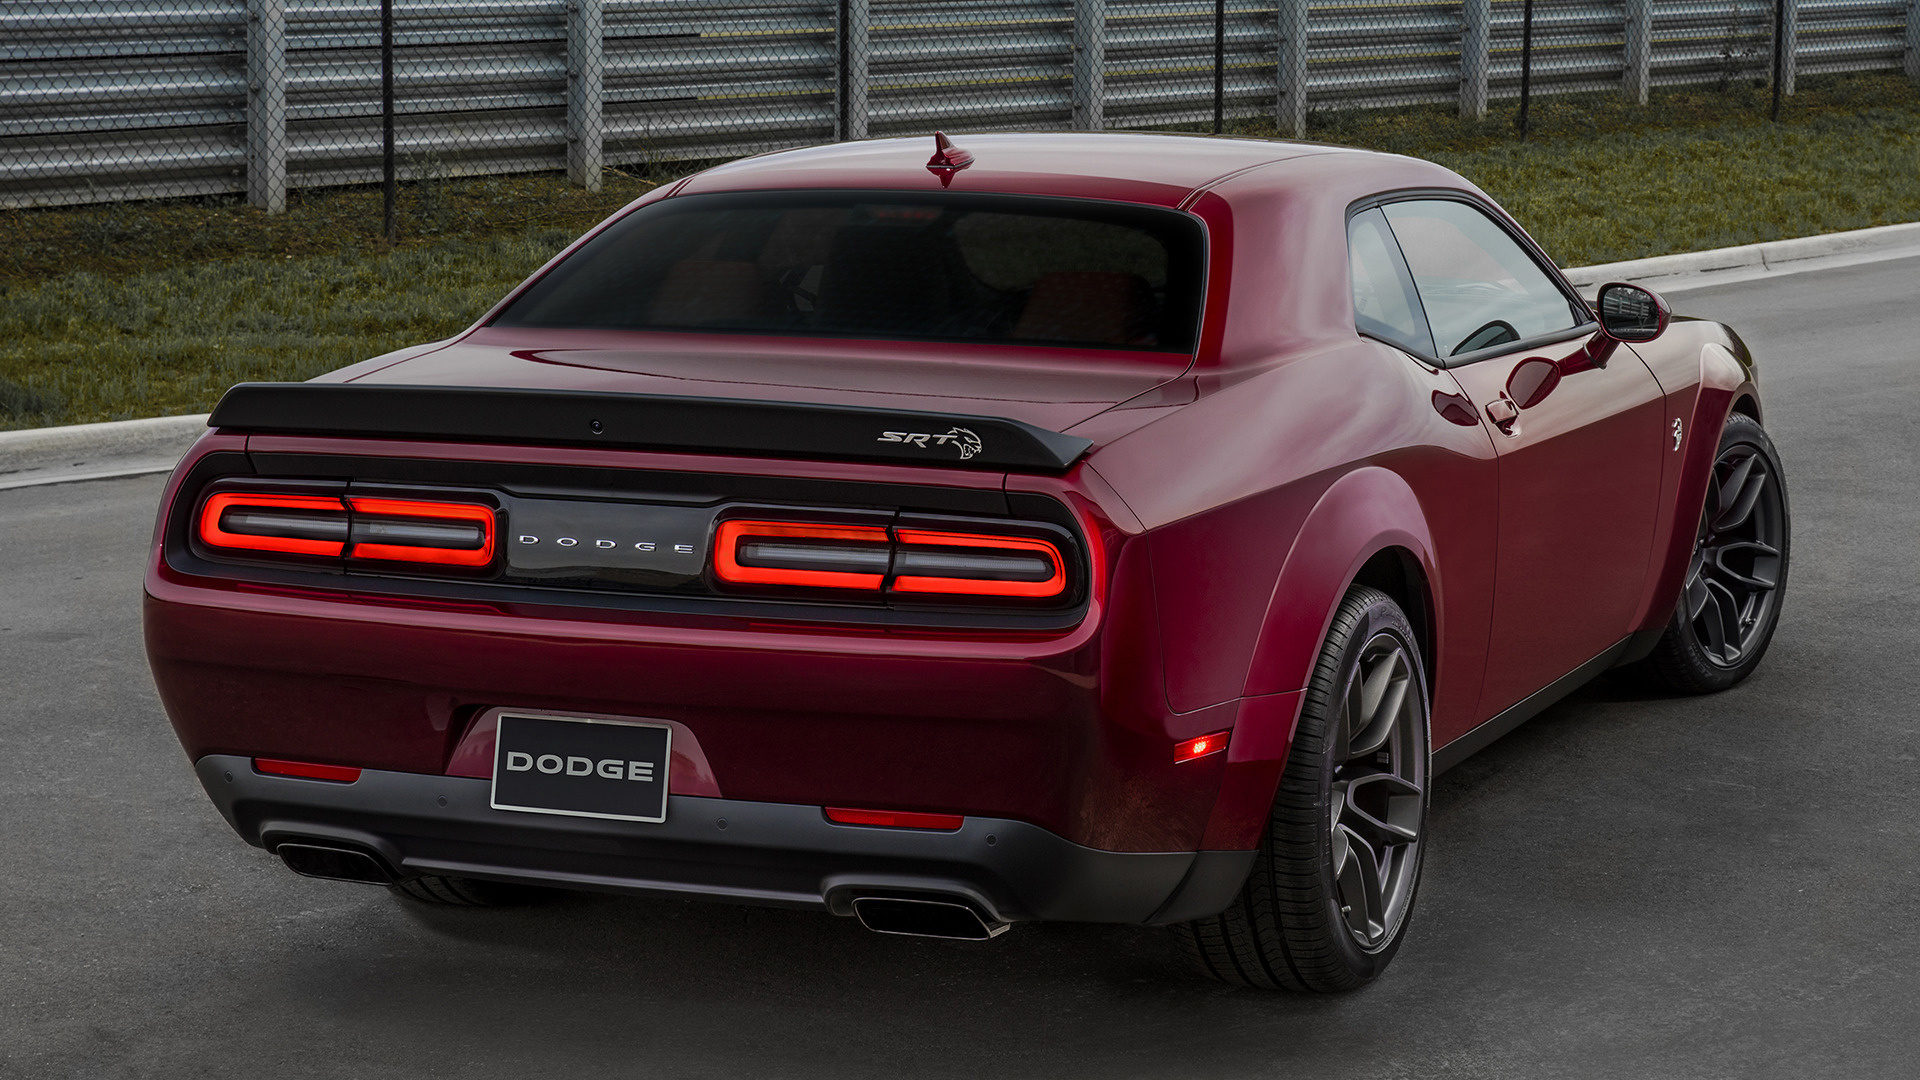 challenger hellcat dodge widebody srt hd specs wallpapers engine